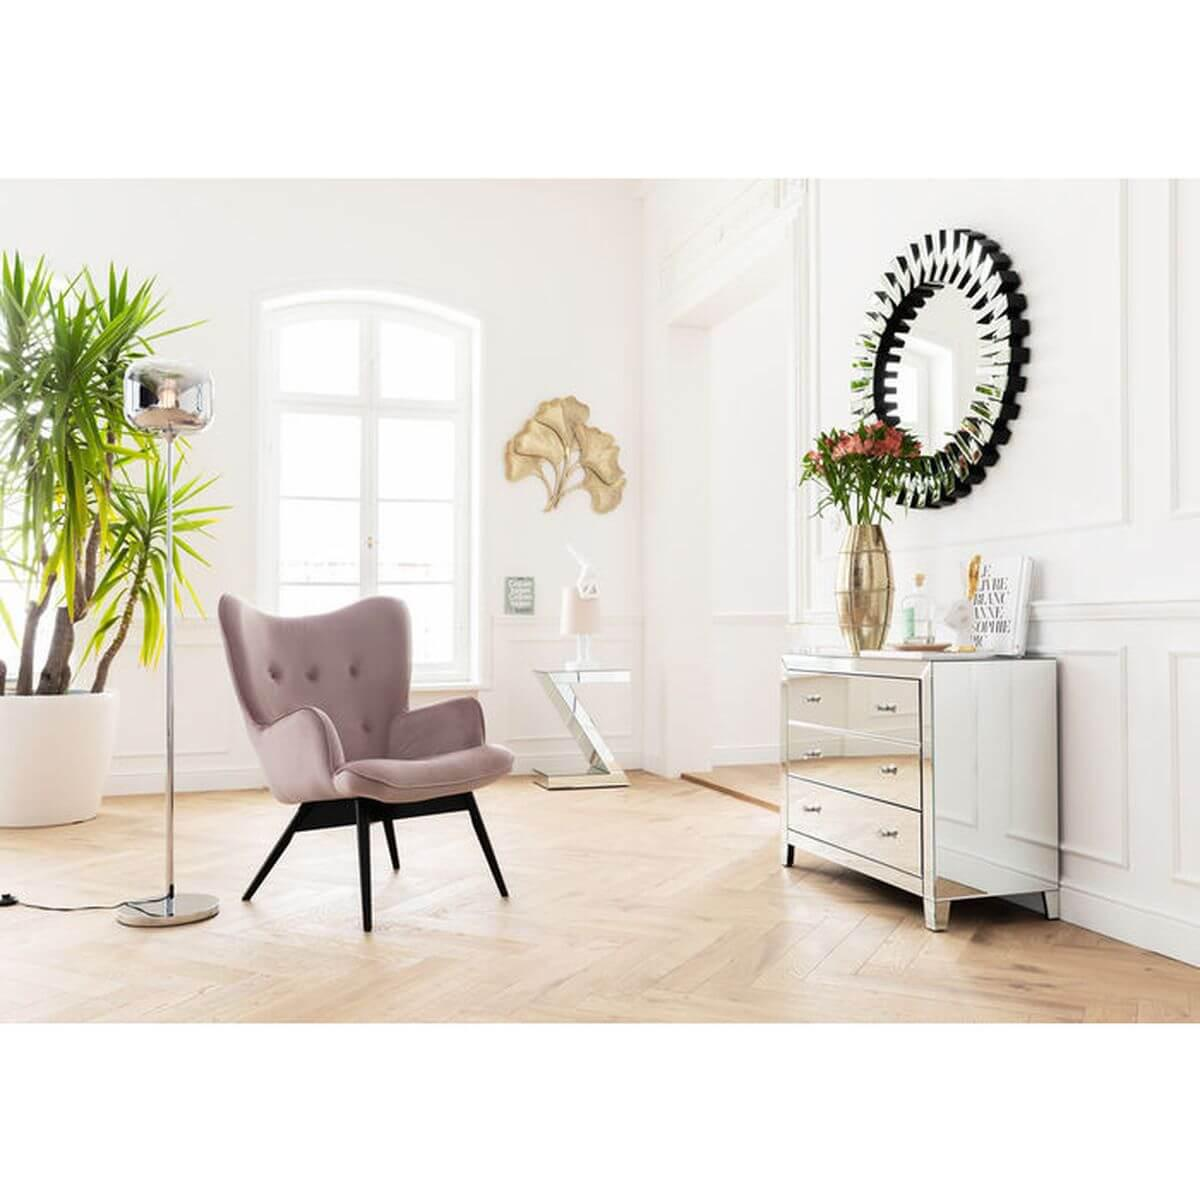 Fauteuil VICKY Kare Design velours rose